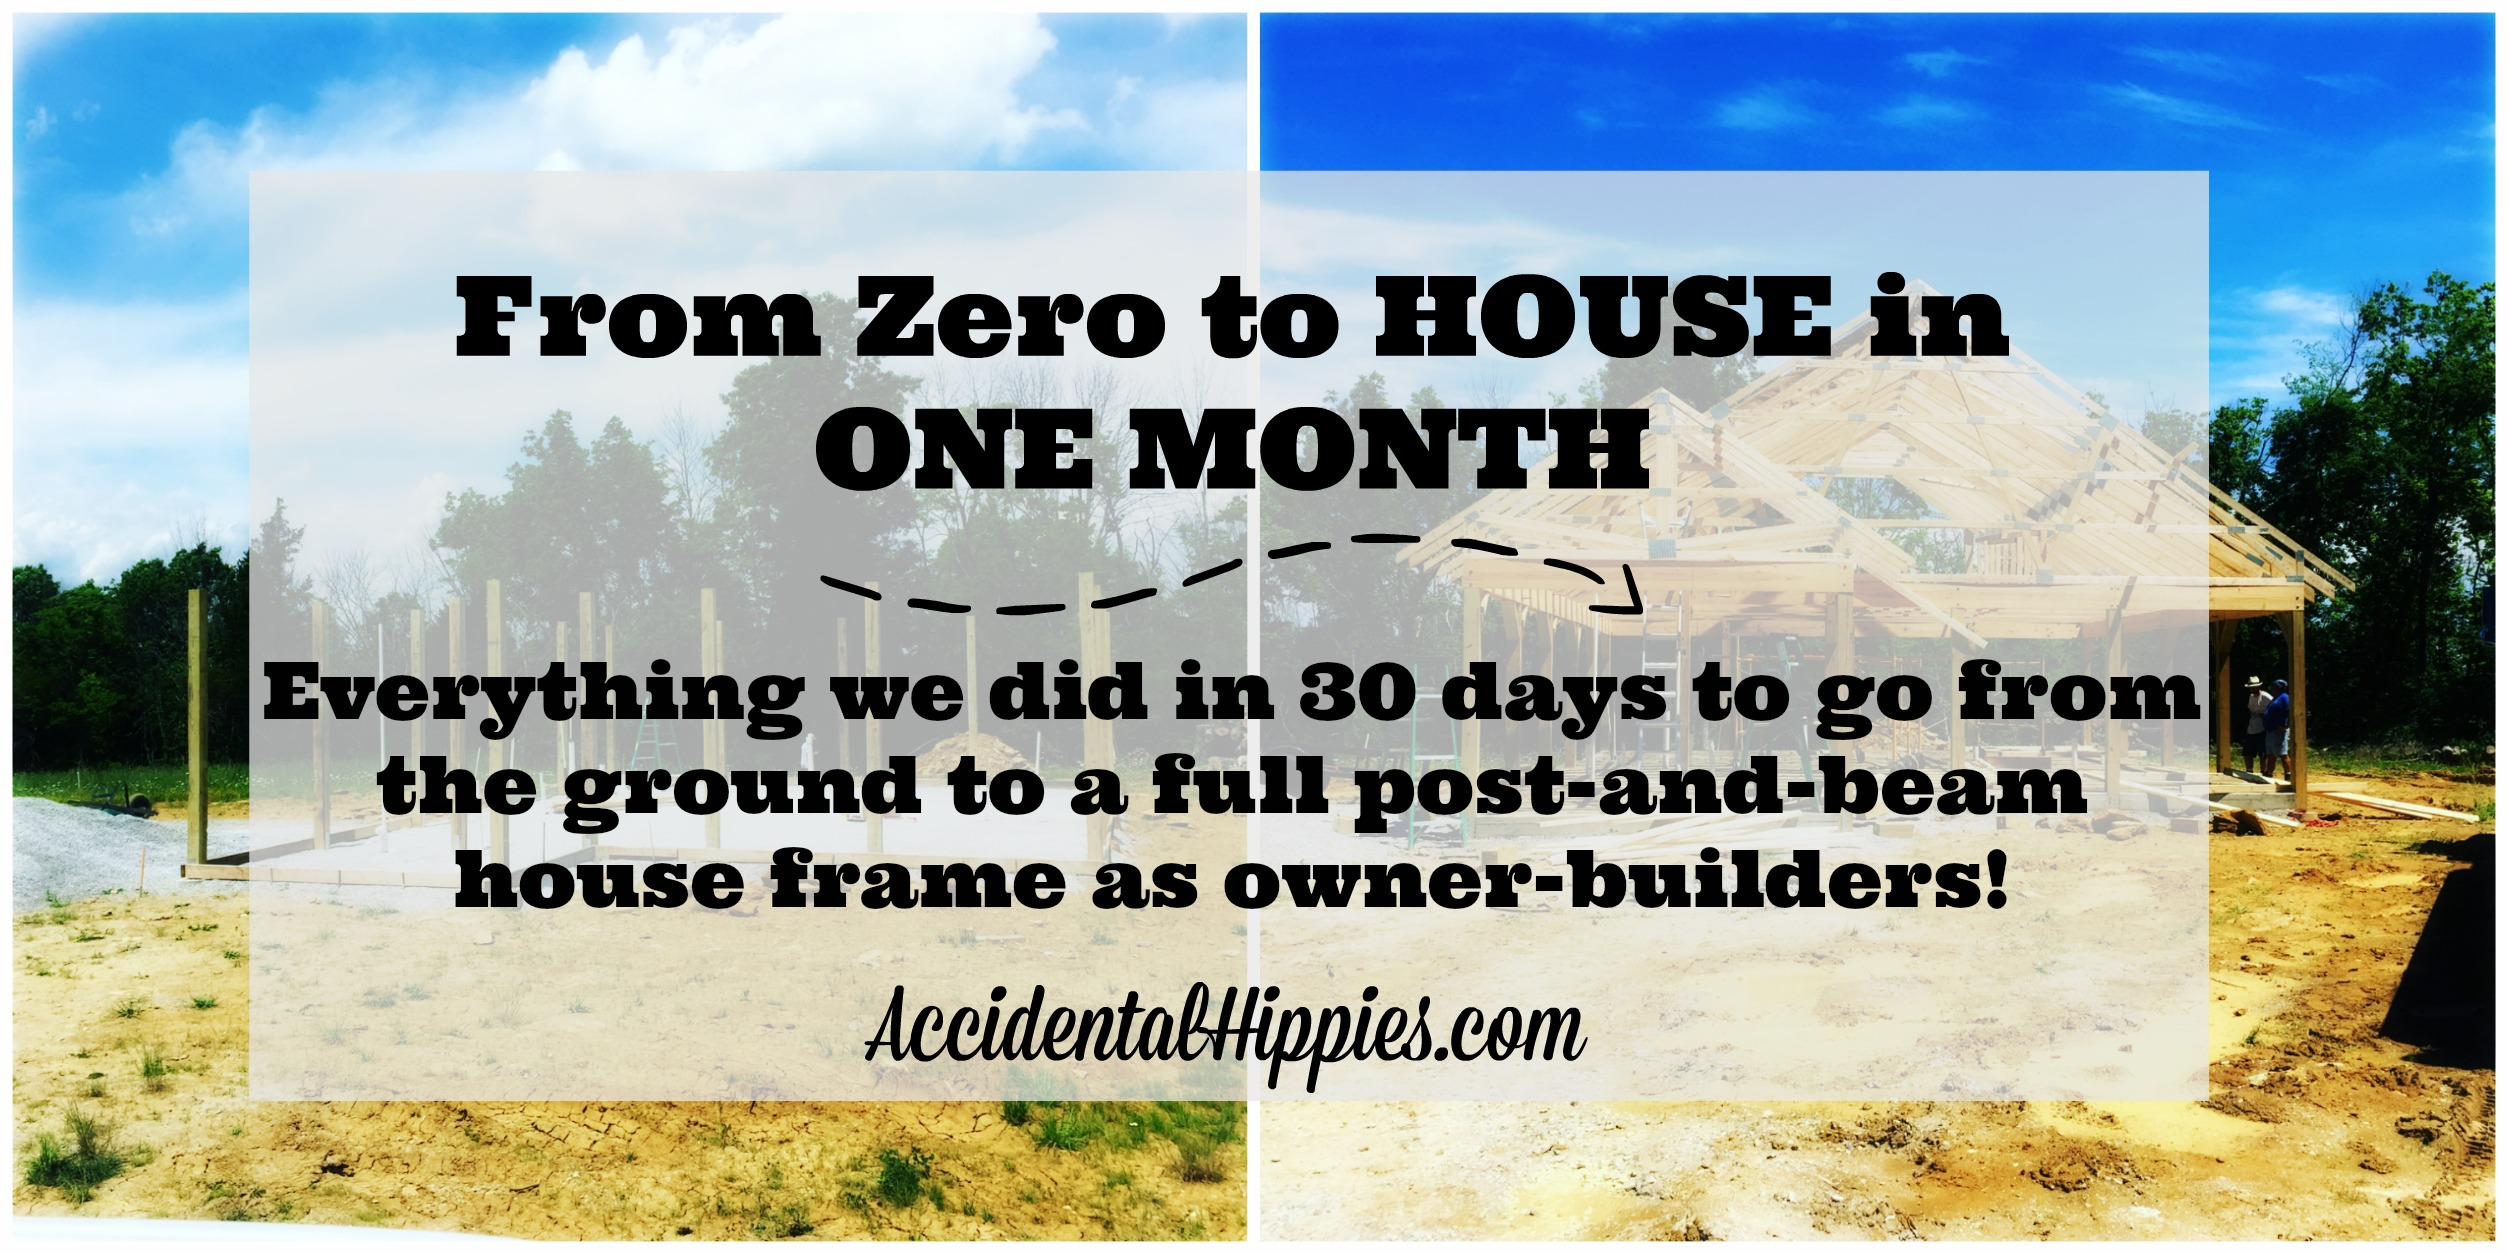 Check out this overview of how one aspiring homestead family built up a full post-and-beam house frame in one month! #diy #house #homestead